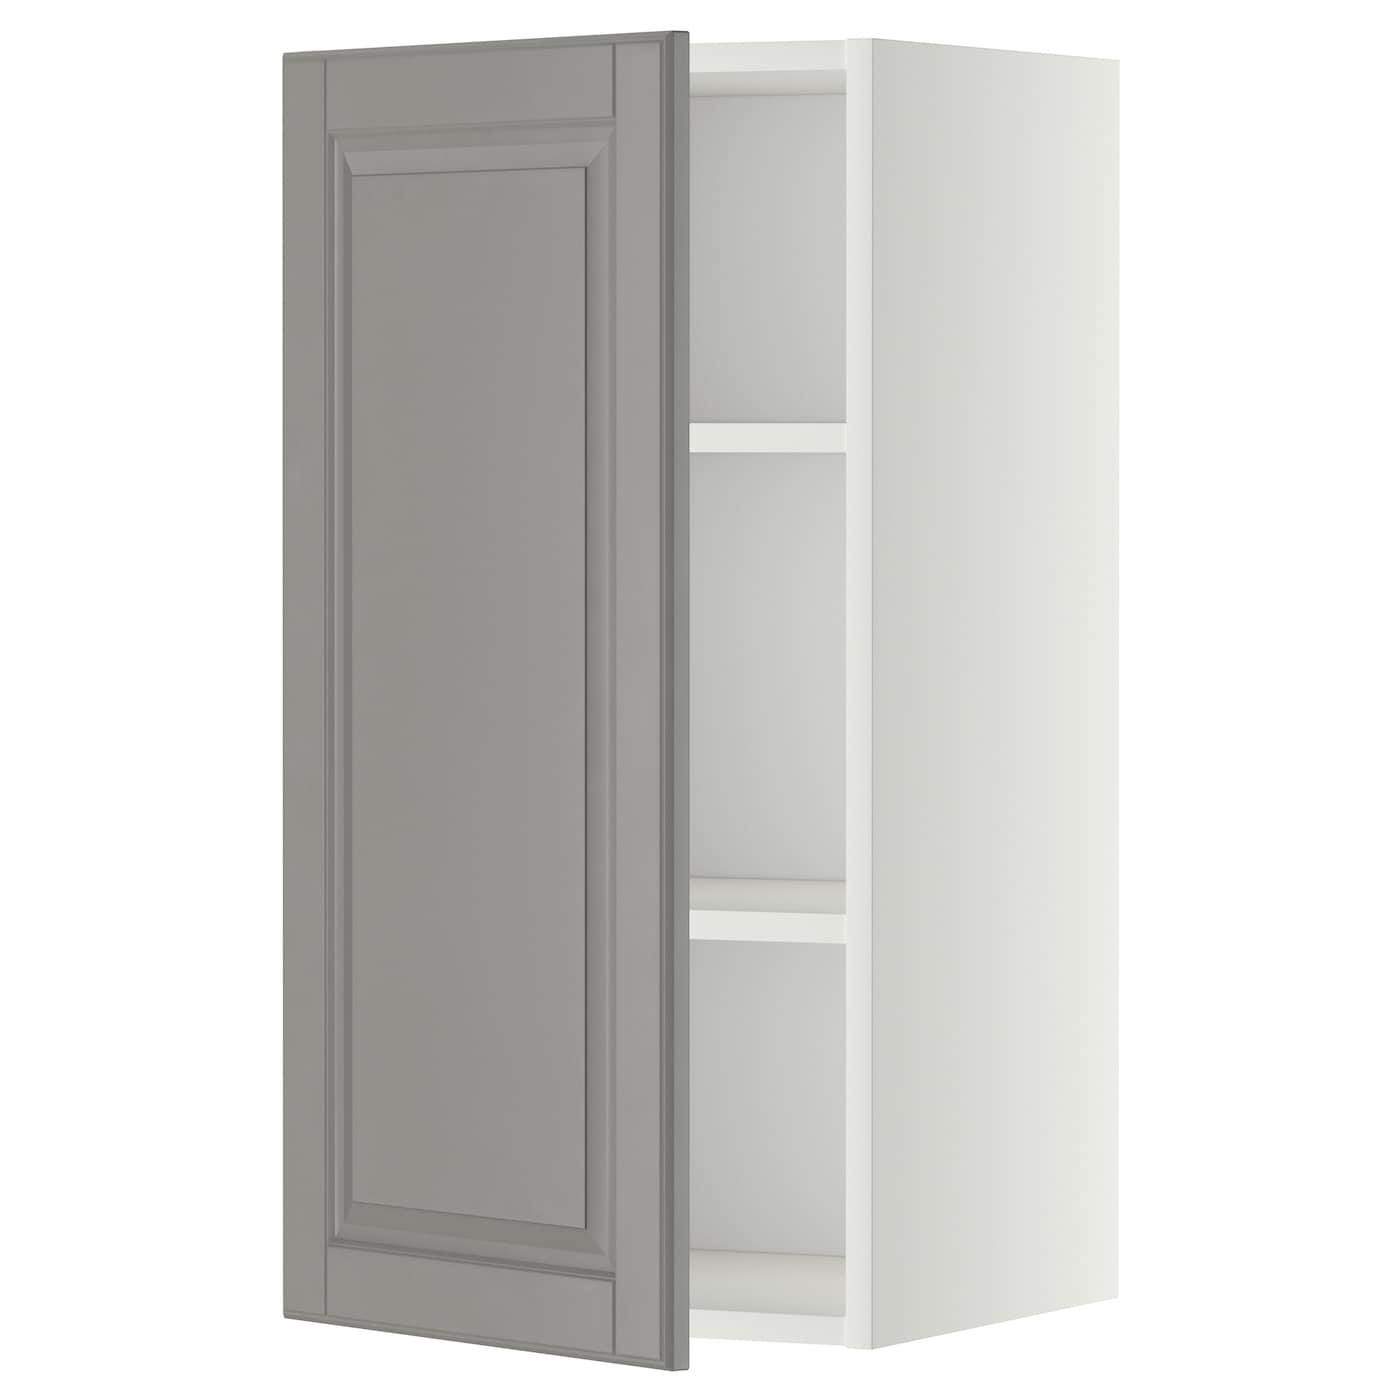 Metod Wall Cabinet With Shelves: METOD Wall Cabinet With Shelves White/bodbyn Grey 40 X 80